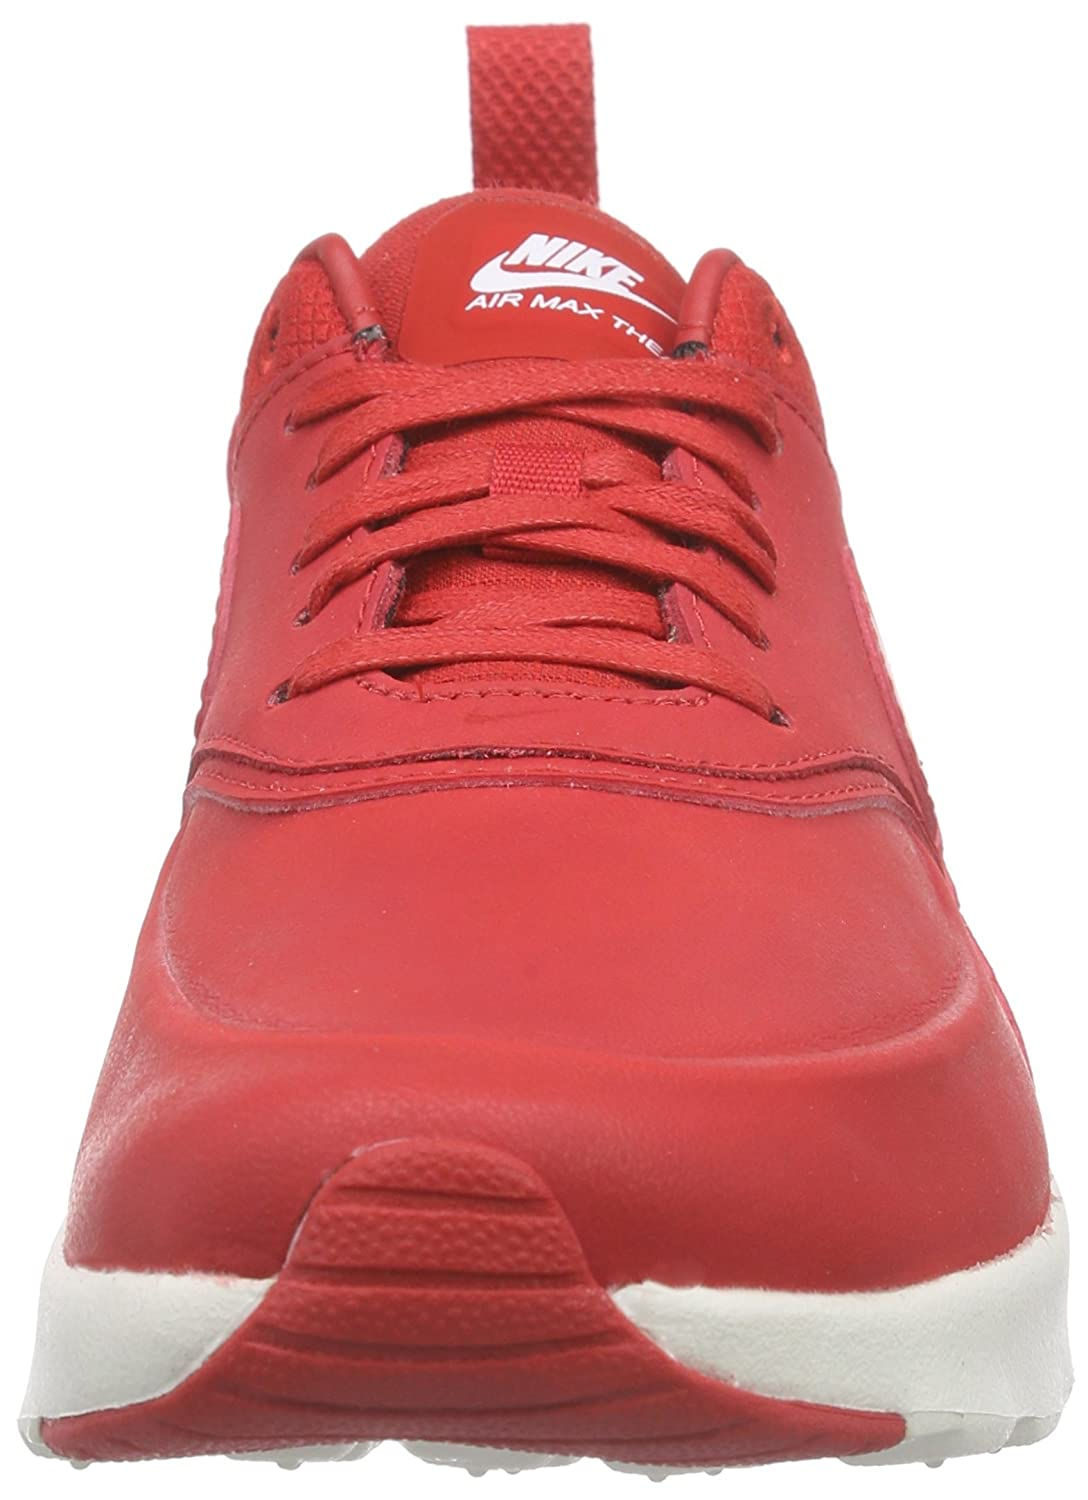 new product 08321 a0f7d Amazon.com   Nike Women  s Air Max Thea Low-Top Sneakers, University Red  Sail White, 4 UK   Road Running